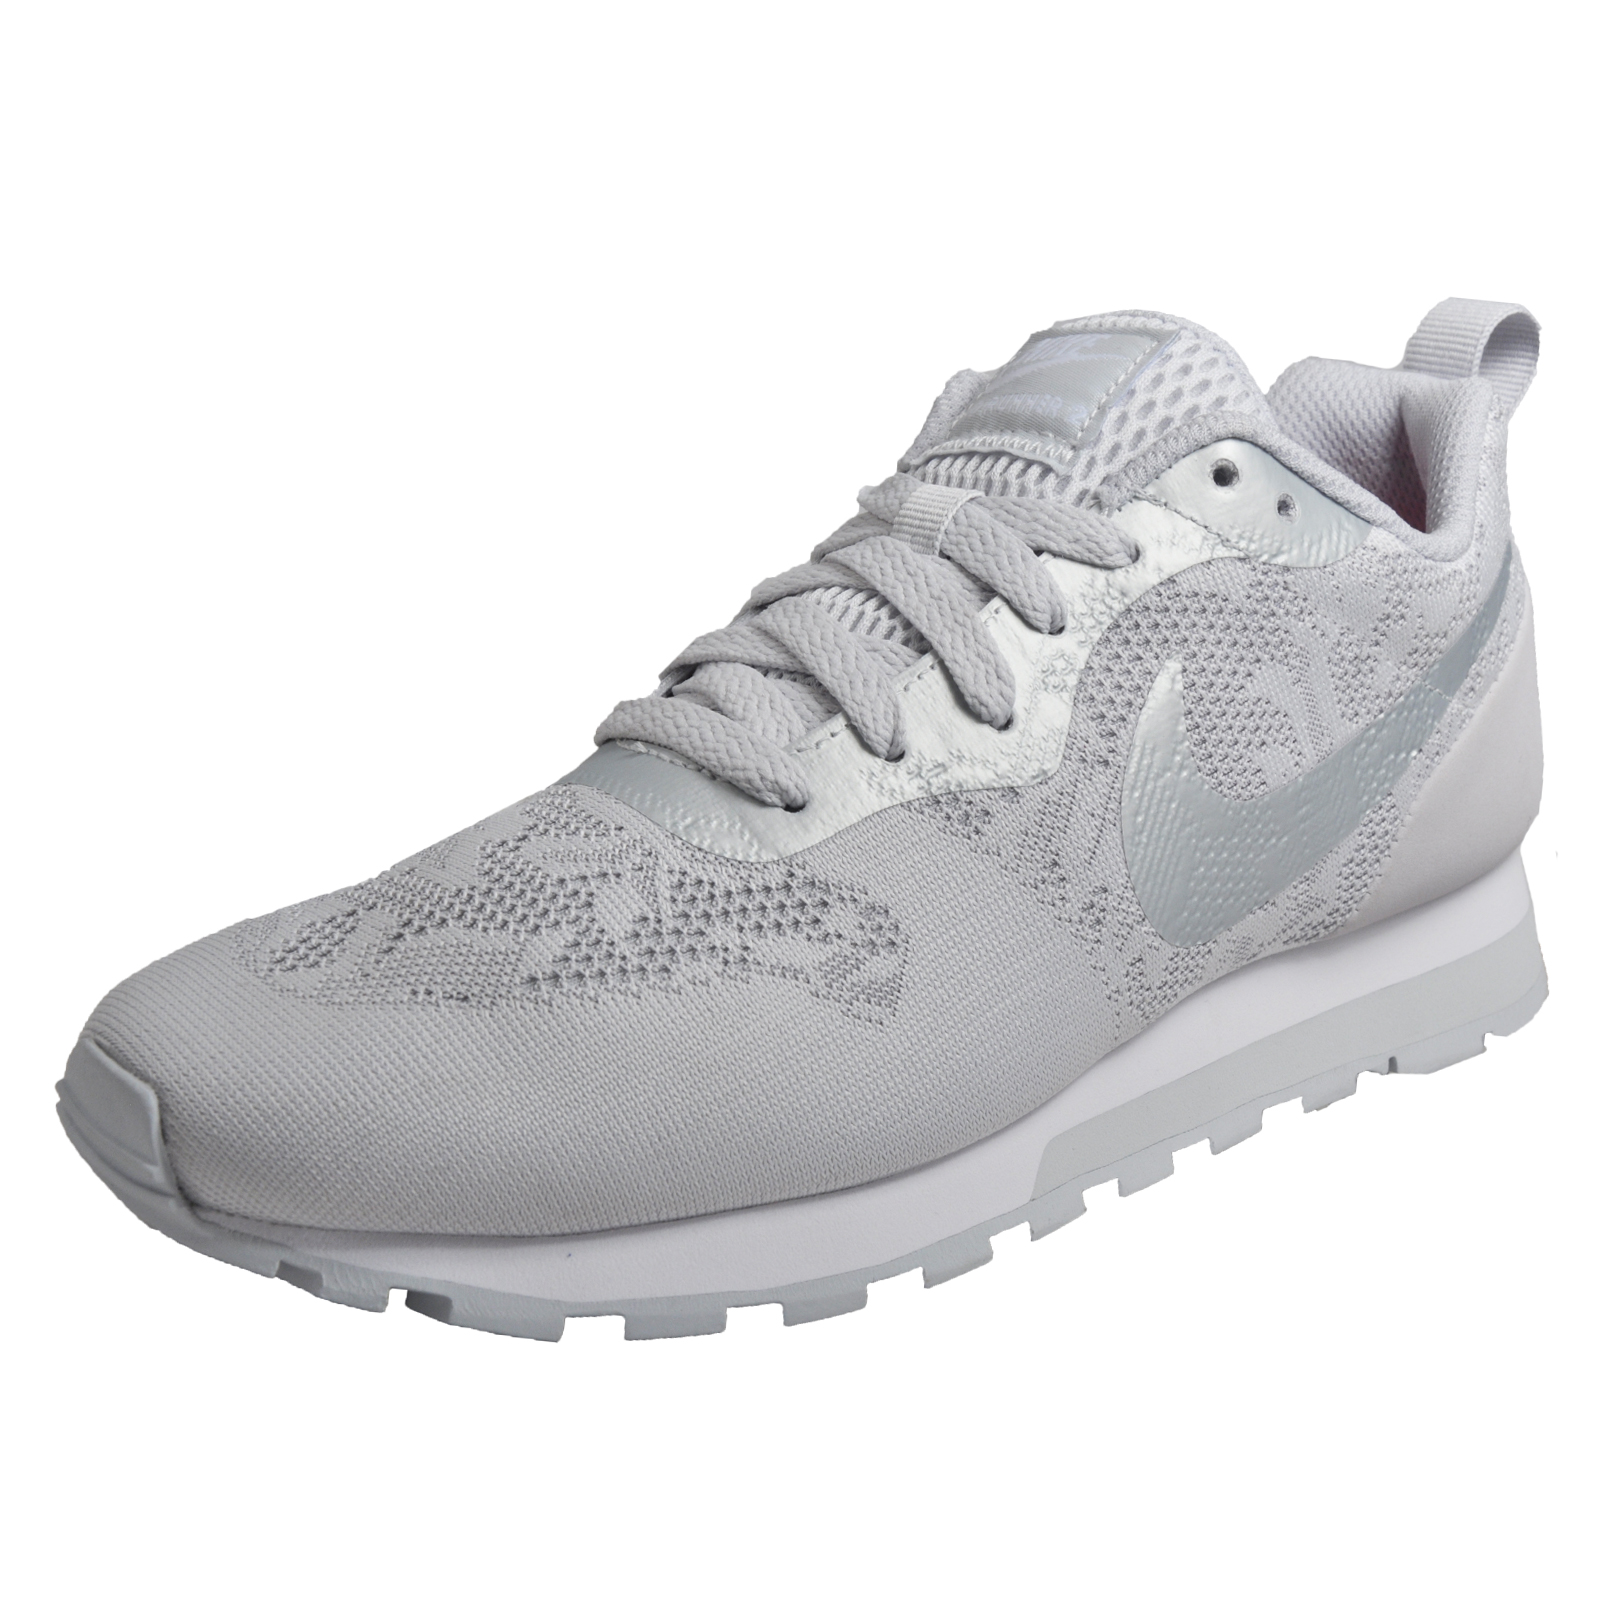 check out 168c9 98942 Details about Nike MD Runner 2 BR Womens Classic Casual Everyday Trainers  Wolf Grey